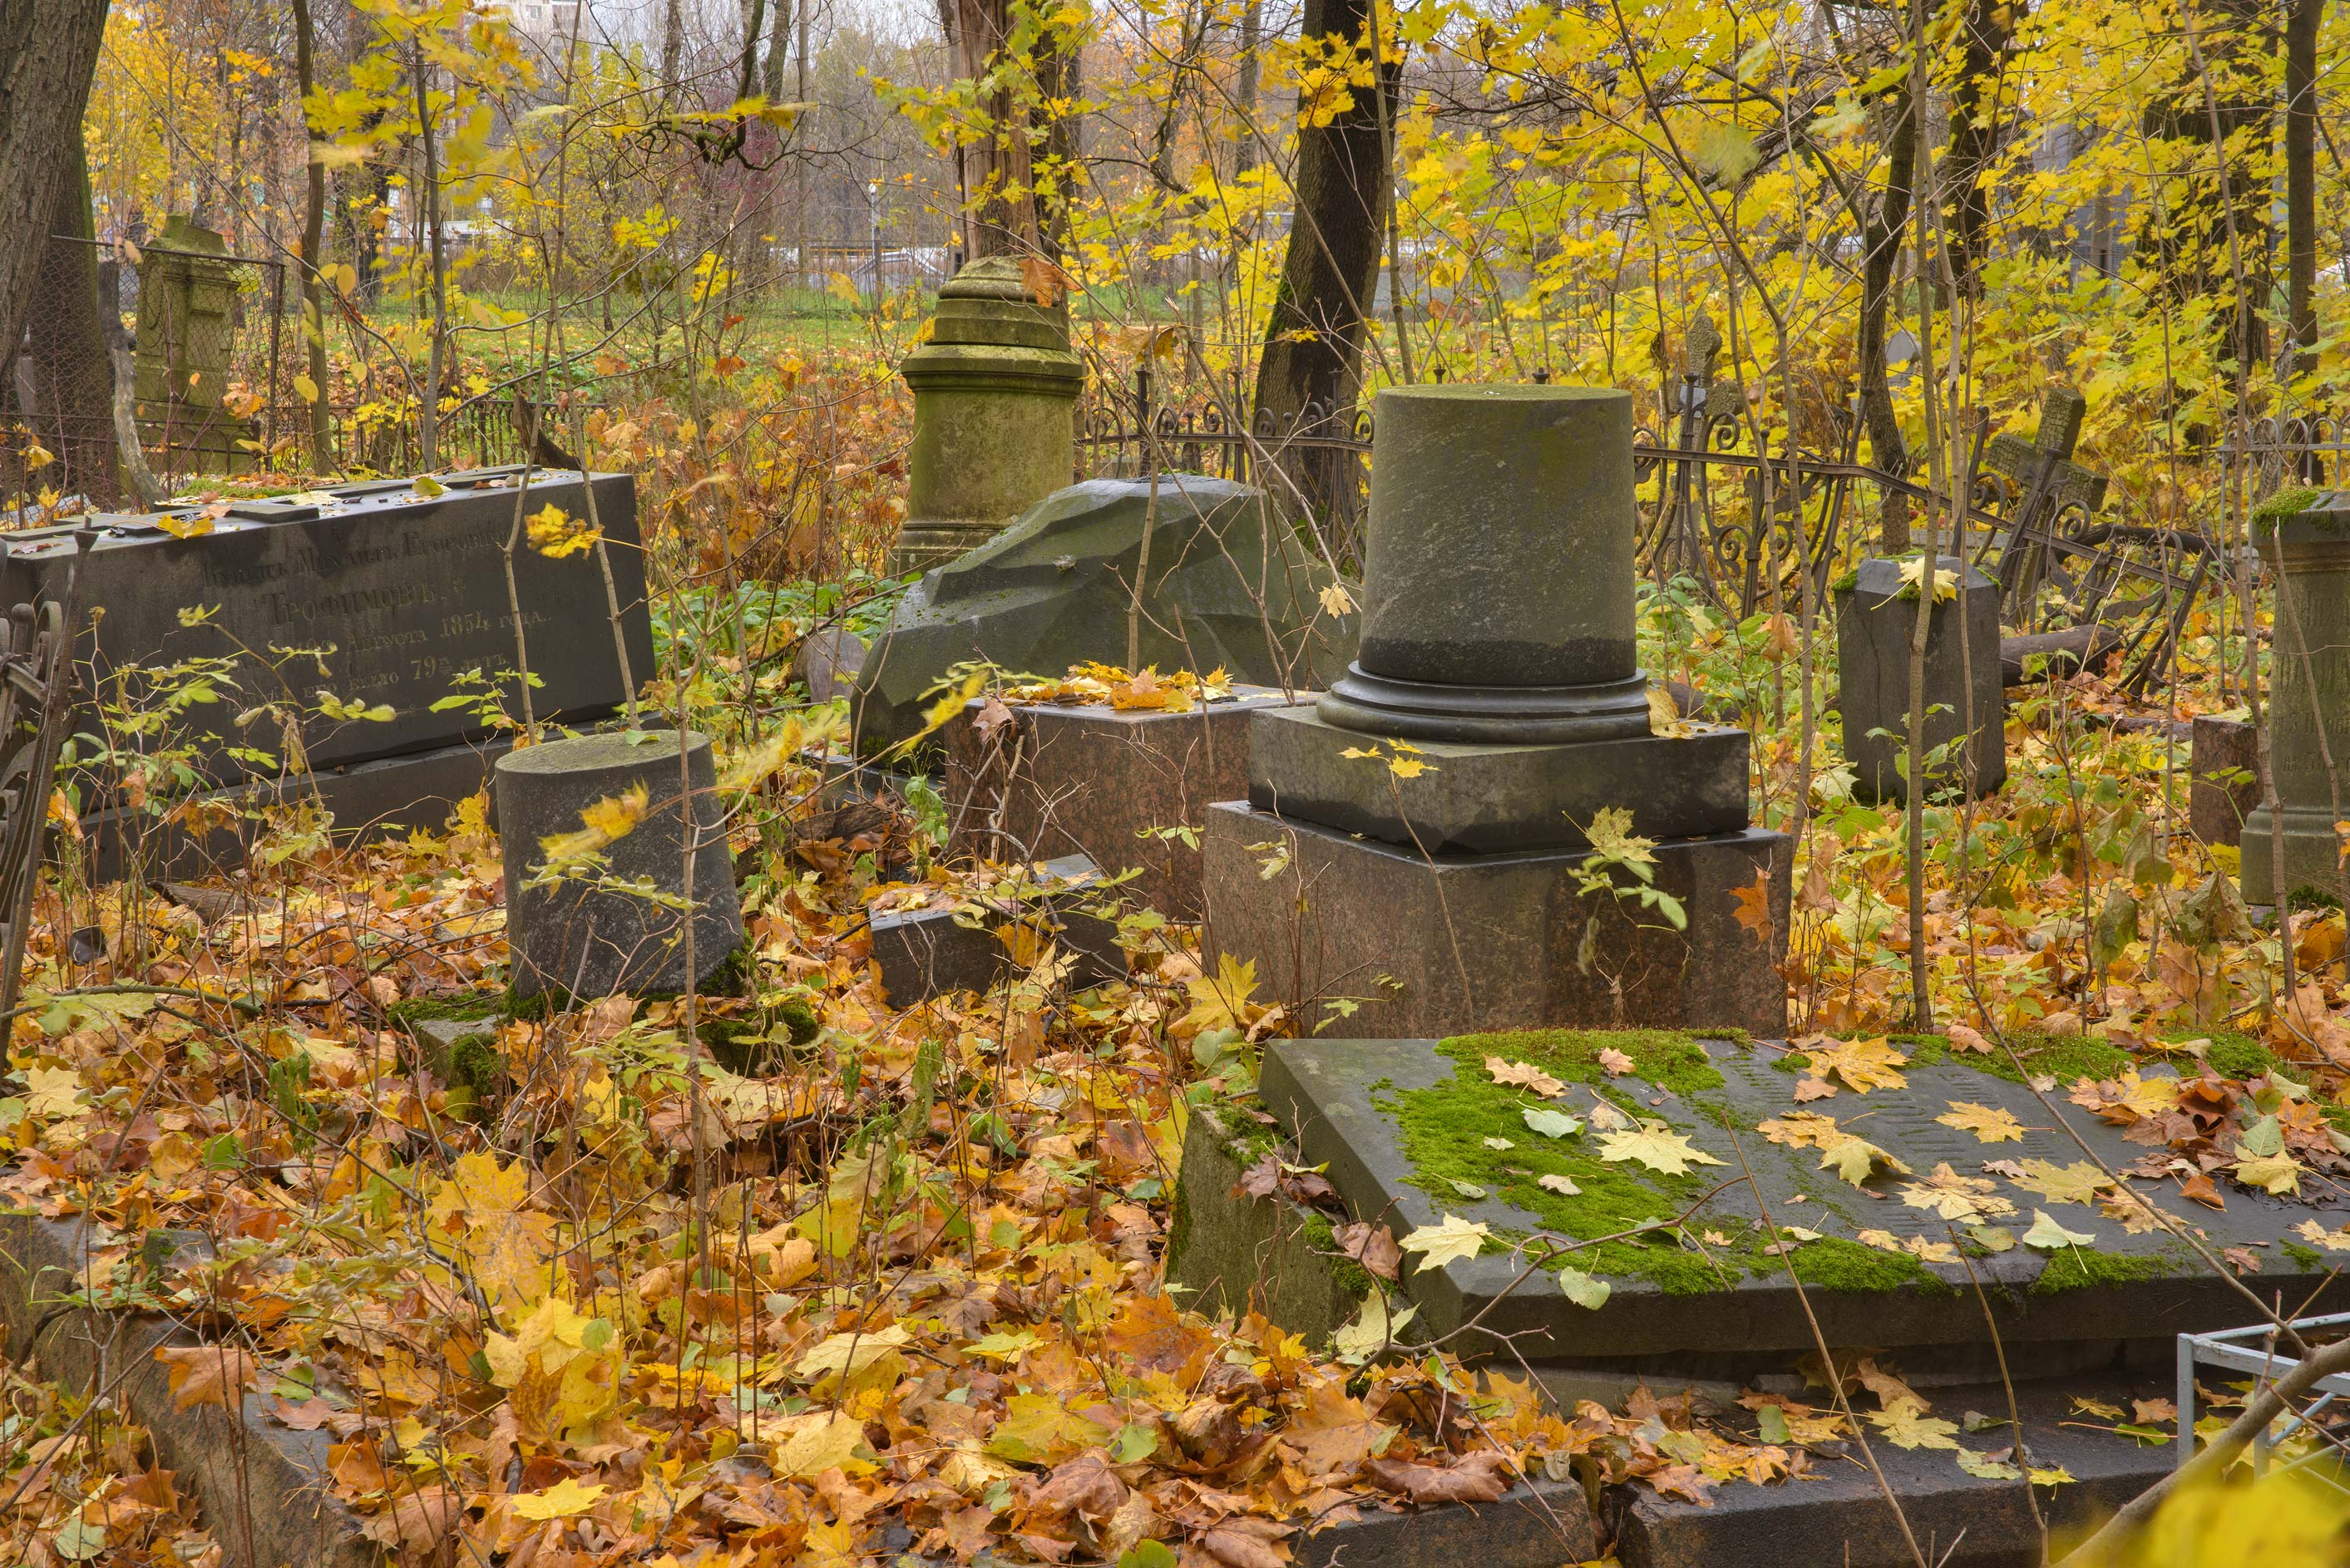 Tombs on Kozhevnikova Lane in Smolenskoe Cemetery...Island. St.Petersburg, Russia